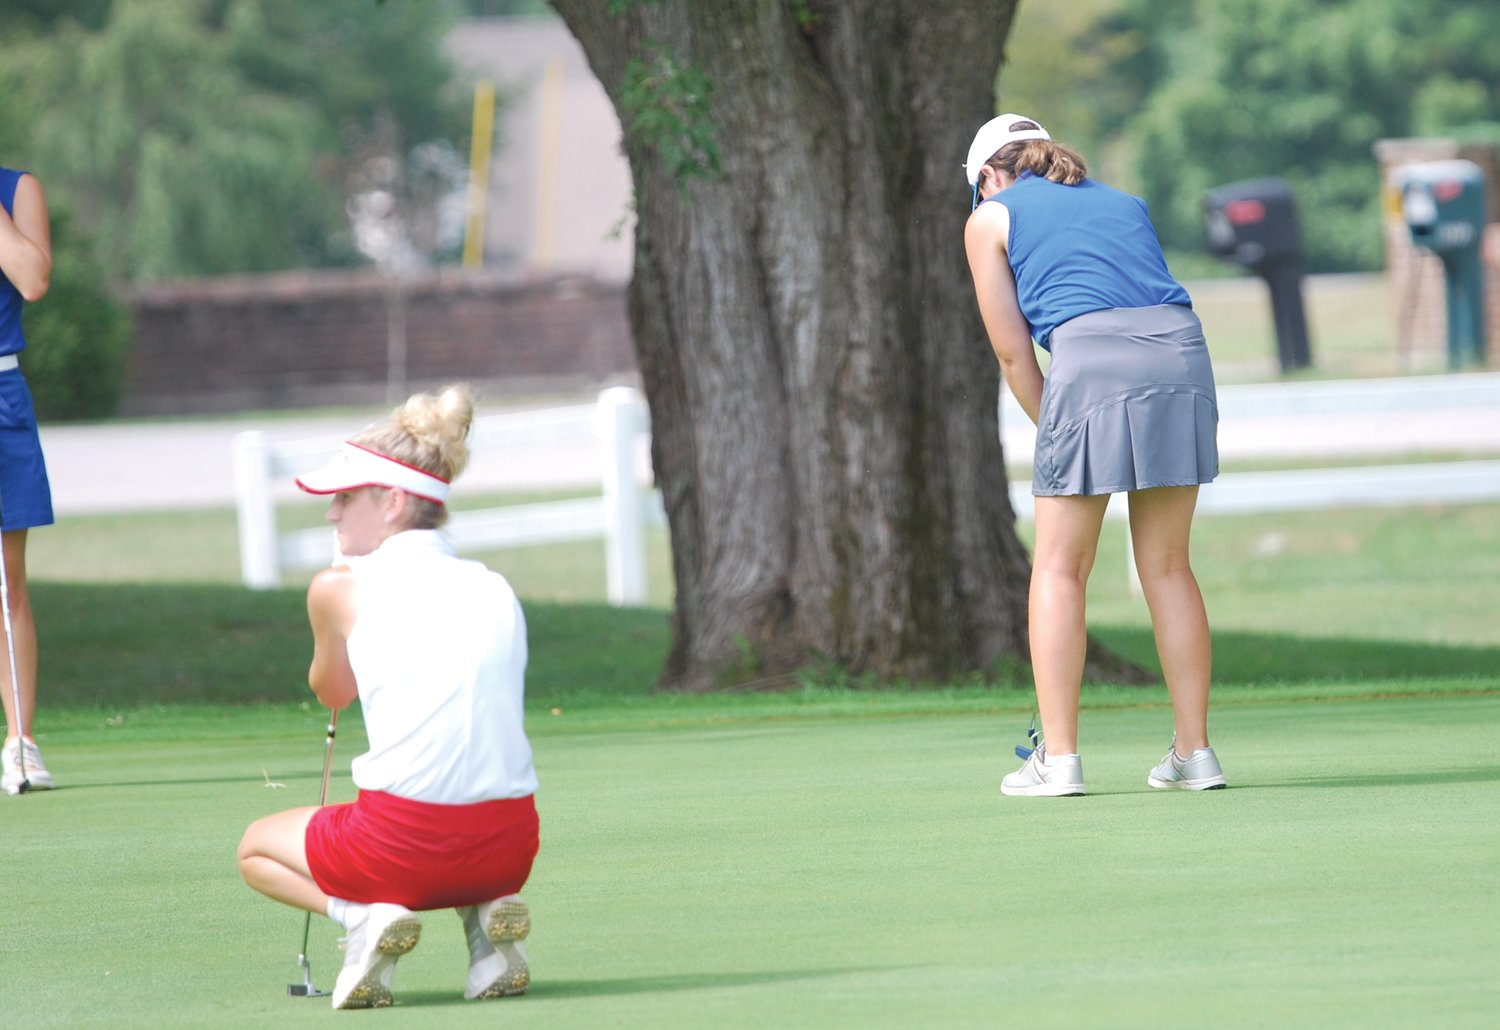 Crawfordsville's Gwyn Redding putts on No. 18 at the Crawfordsville Country Club. The senior shot a 112 at the Sagamore Conference meet.